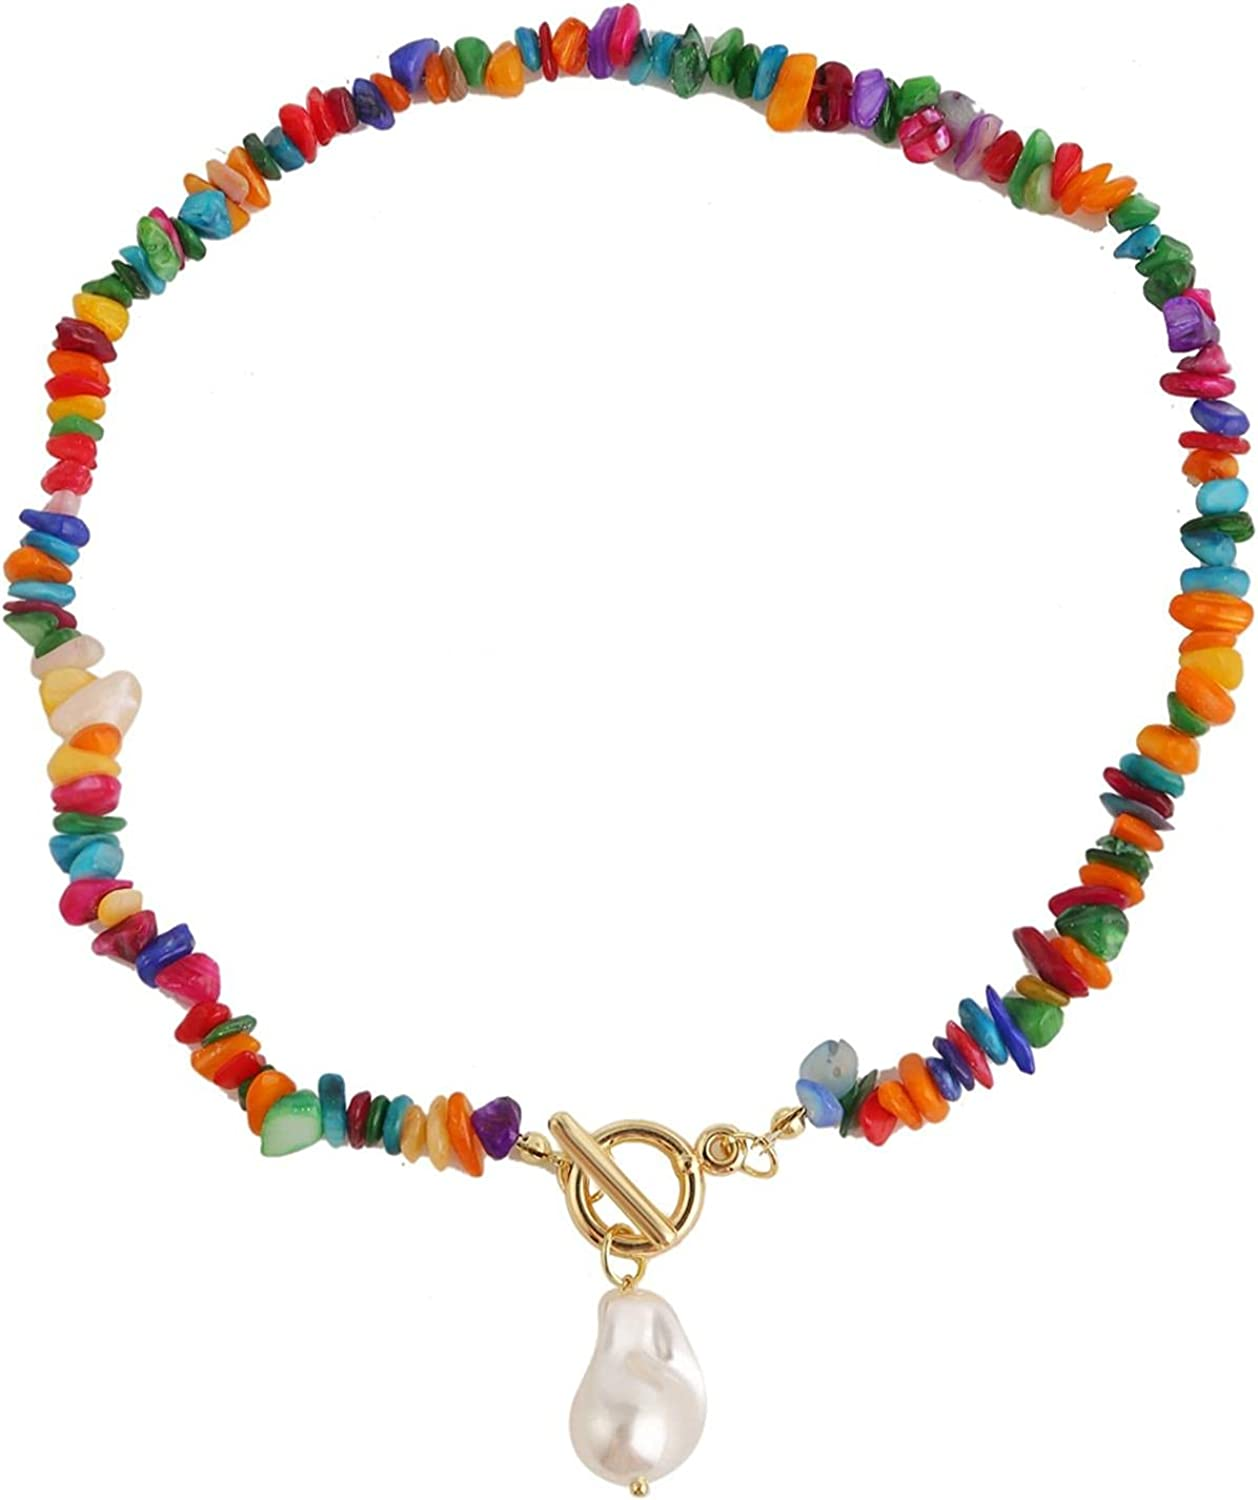 Colorful Stone Choker Necklace Boho Bead Pearl Pendant Necklaces Handmade Rainbow Stone OT Clasp Chain Jewelry Bohemian Gemstone Pearl Beaded Collar Necklace